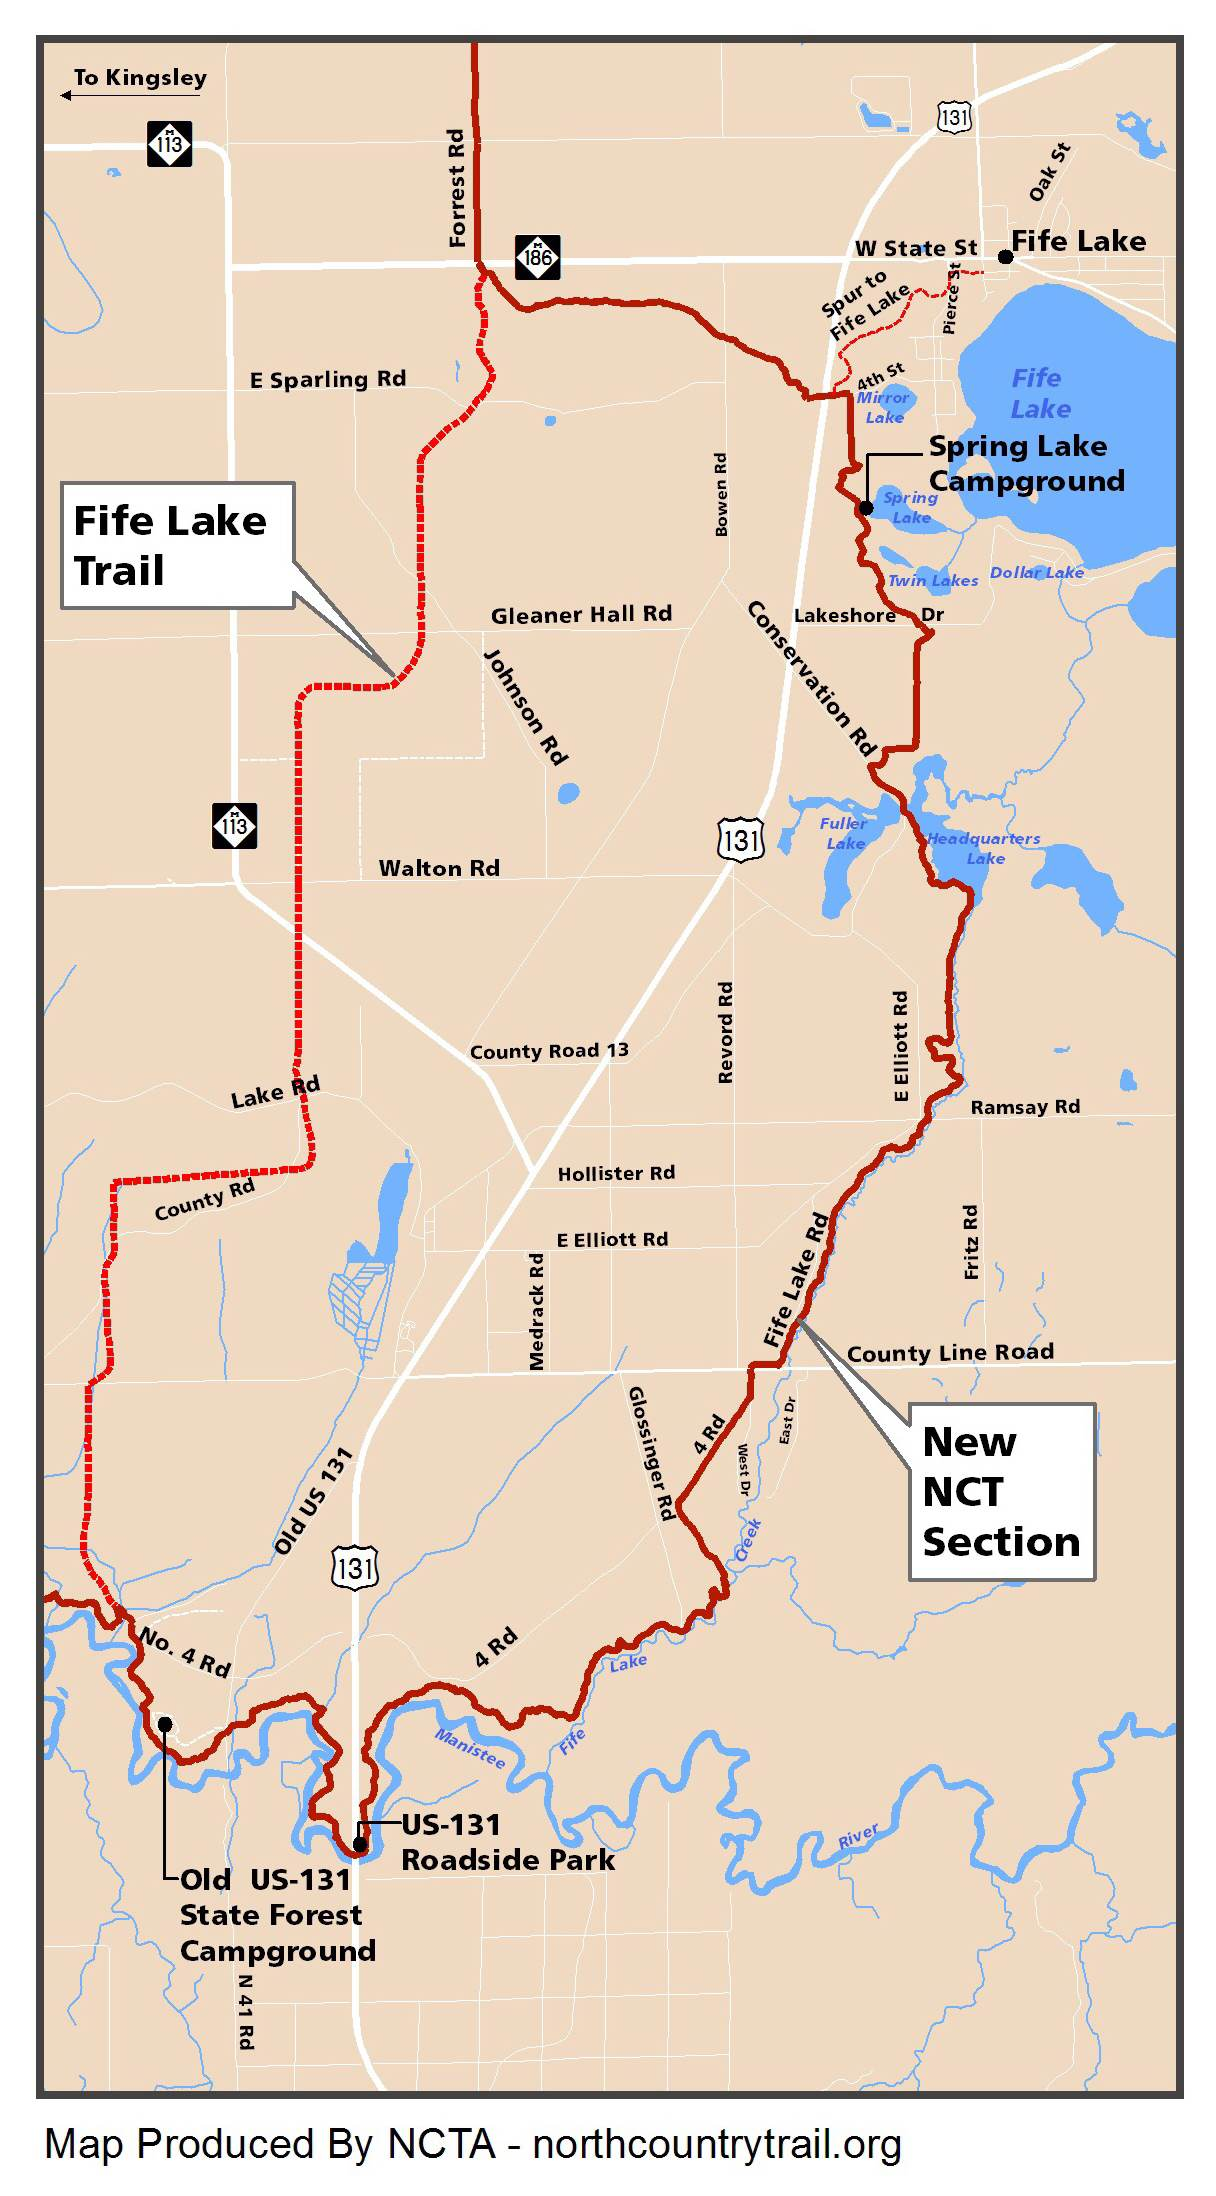 fife lake loop the north country trail reroute meets up with what is nowthe. north country trail fife lake loop trail now open  the outdoor